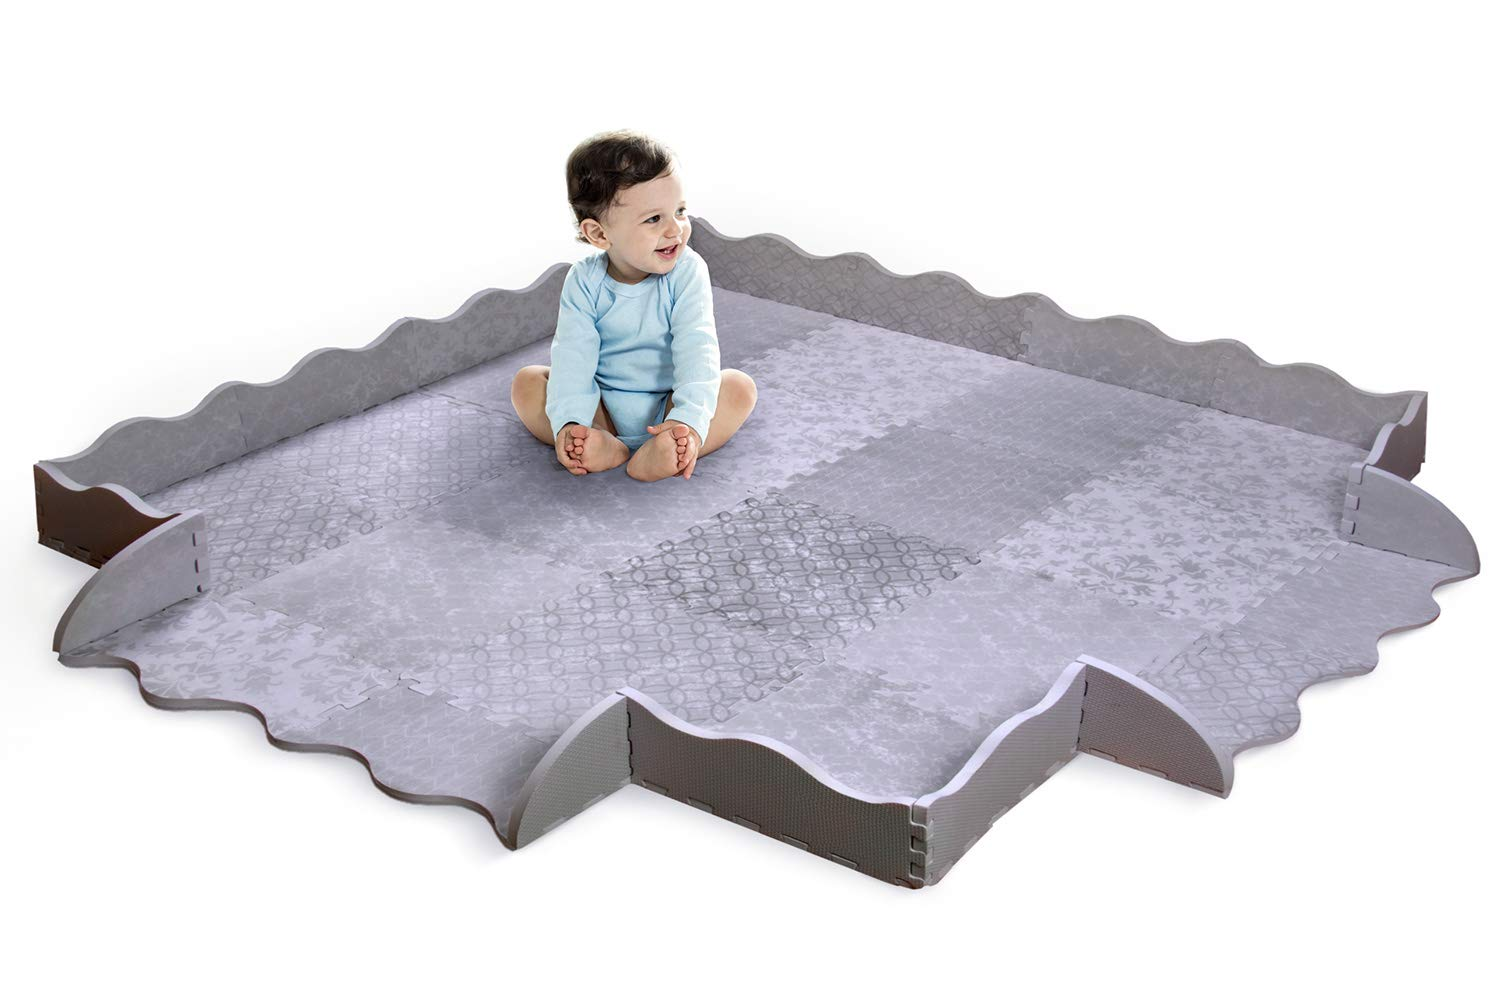 Designer Baby Play Mat with Fence - Thick Playmat Baby Mat with Non-Toxic Safety Soft Foam - Baby Floor Mats Tiles Gym for Infants, Babies, Crawling, Toddlers, Playing Kids Nursery Rug Emma + Ollie